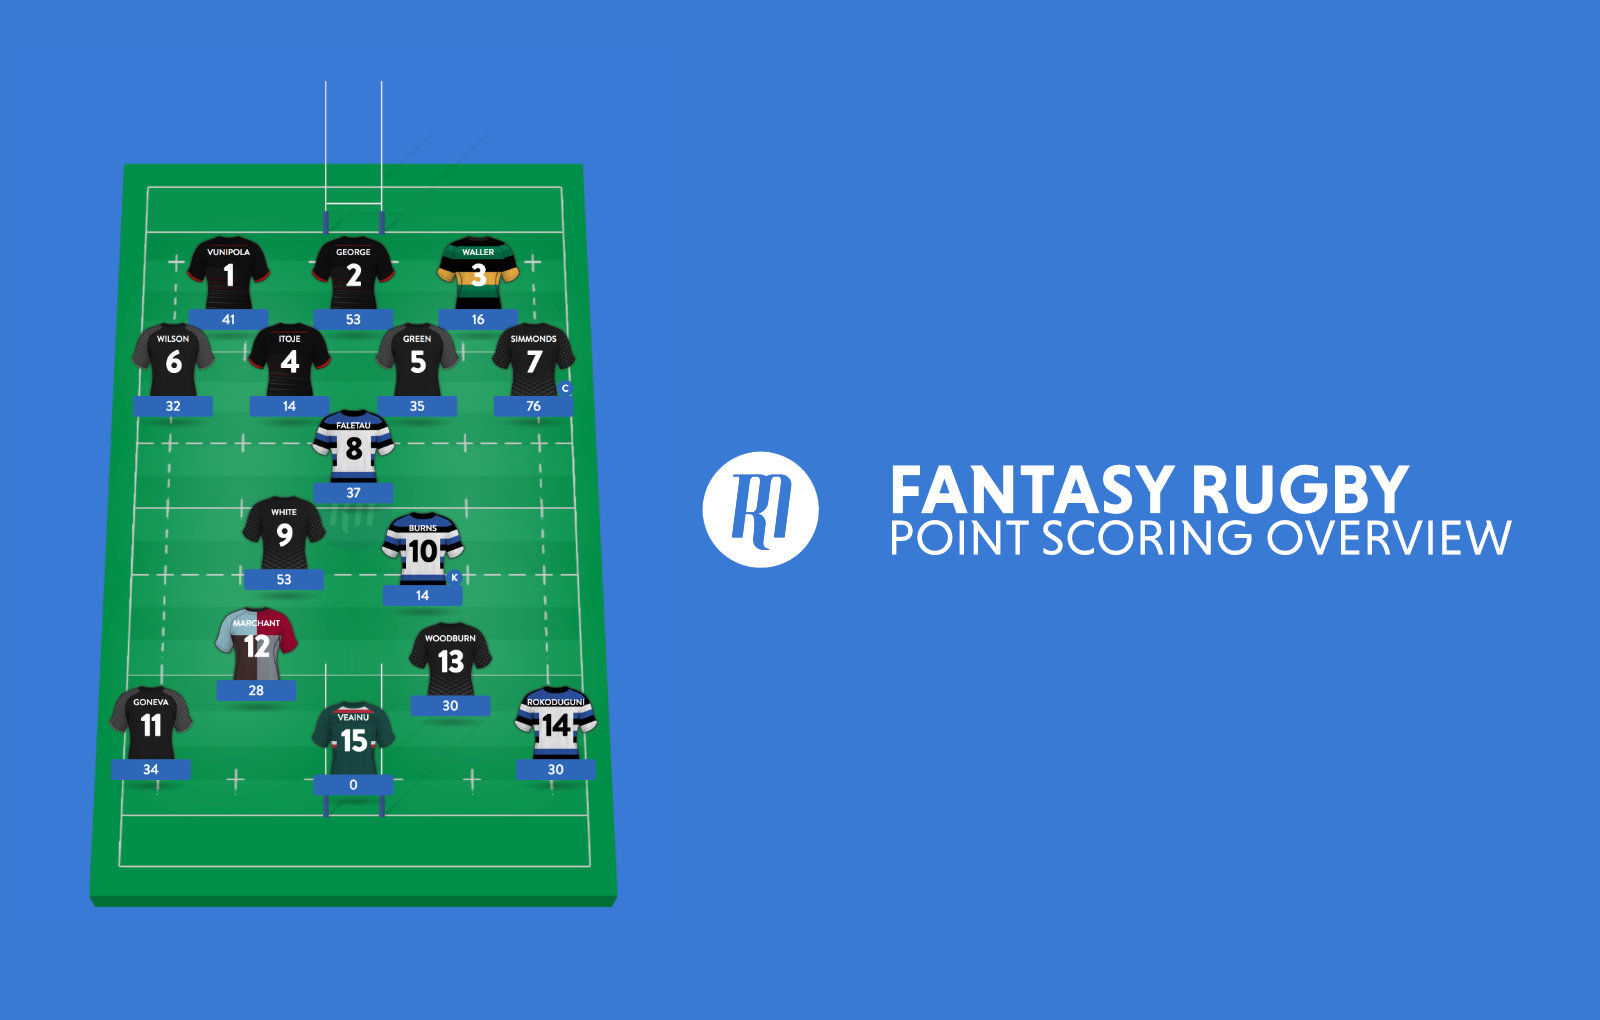 Fantasy Rugby: How are points scored?